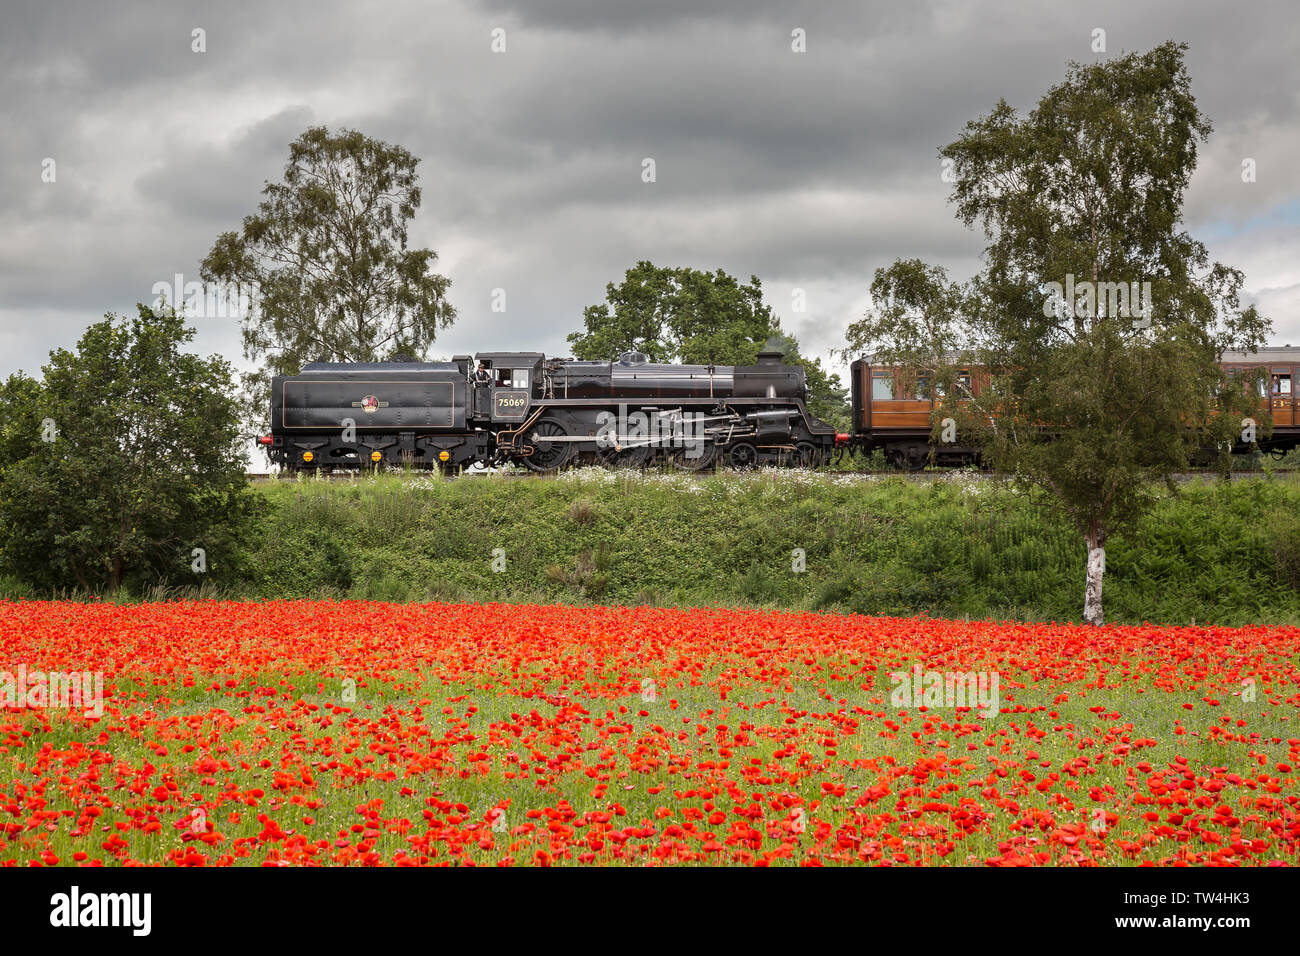 Side view of vintage UK steam train in a countryside landscape scene passing fields of red poppies. - Stock Image